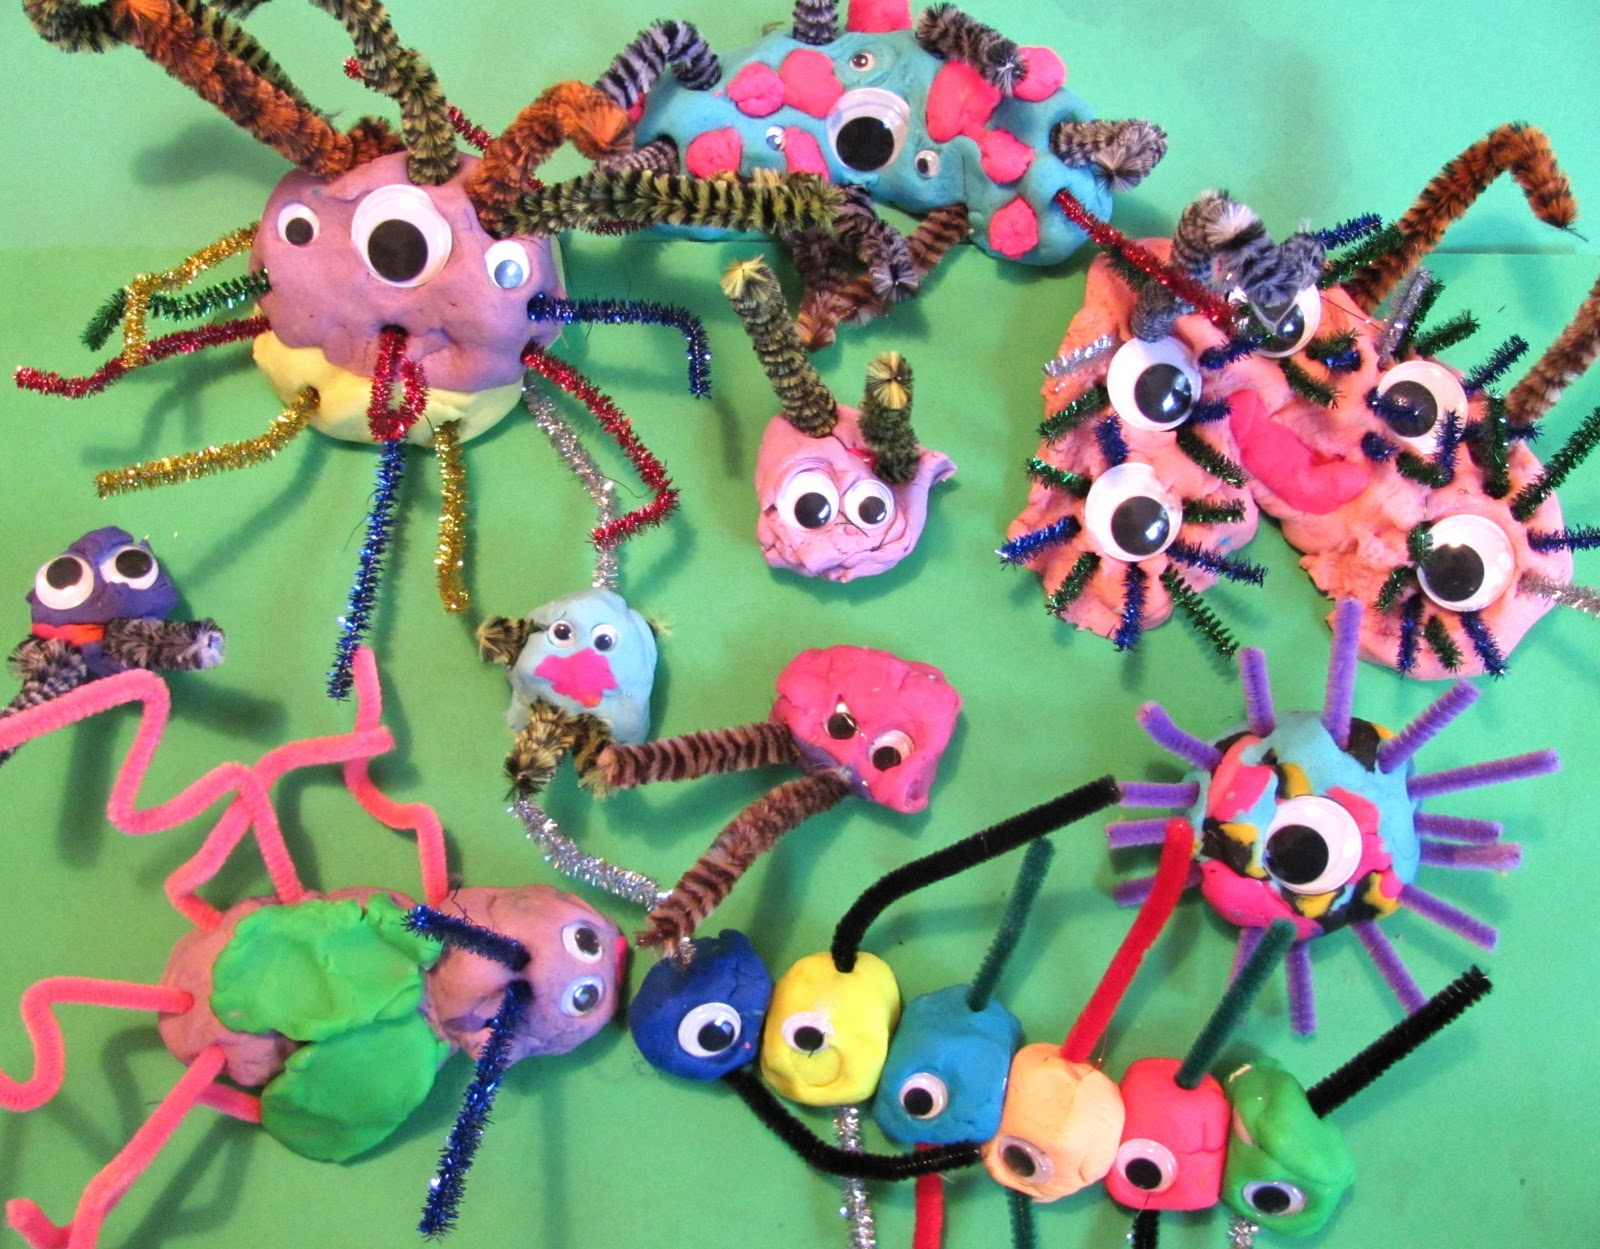 Pipe Cleaners Googly Eyes and Play Dough  sc 1 st  The Chocolate Muffin Tree & The Chocolate Muffin Tree: Pipe Cleaners Googly Eyes and Play Dough